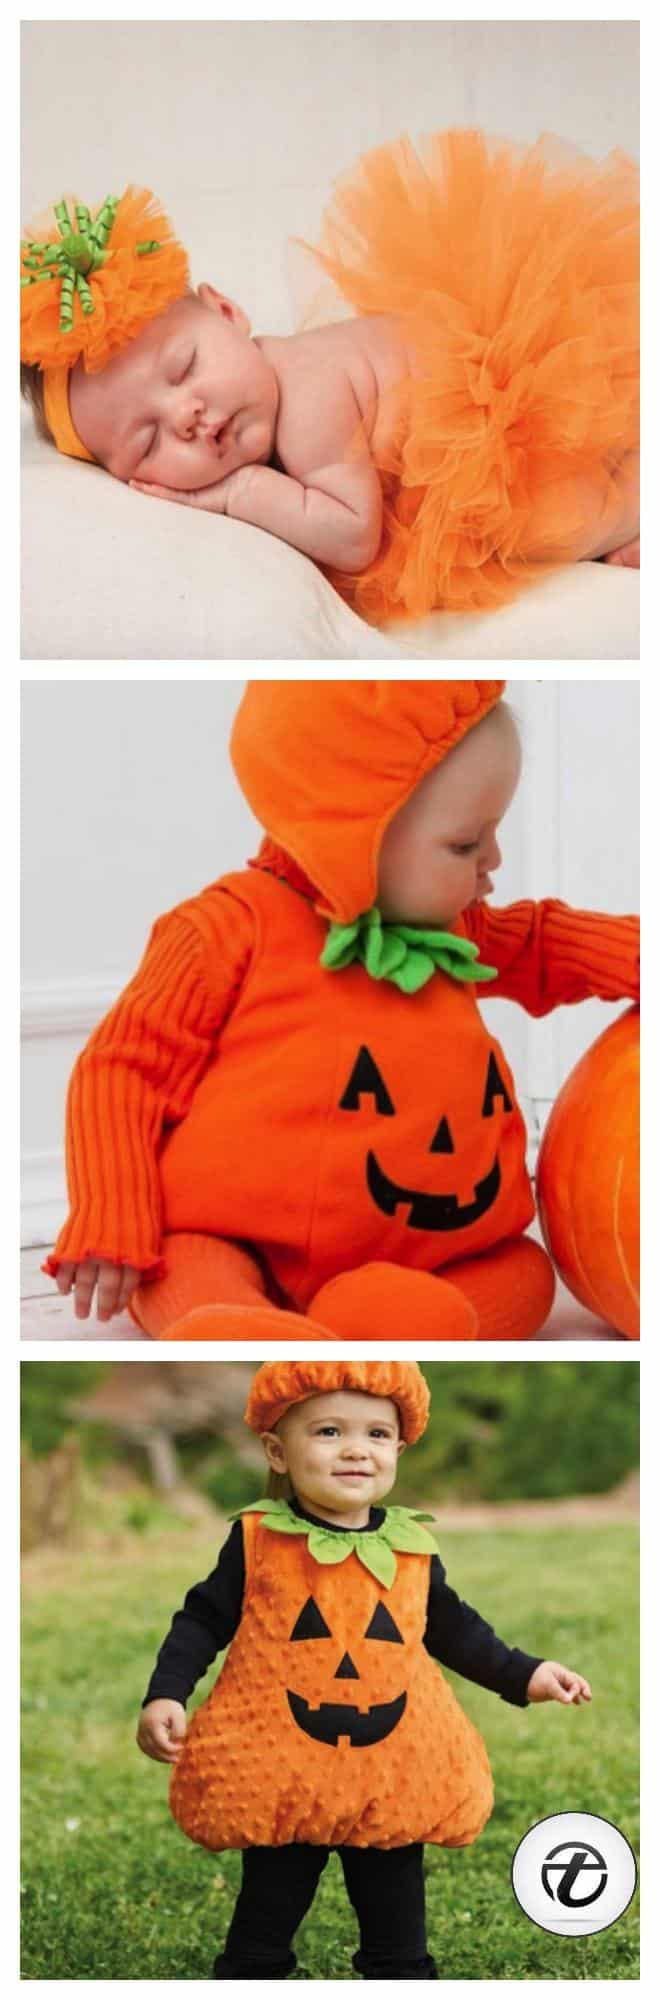 halloween costume for toddlers  sc 1 st  Outfit Trends & Kids Halloween Costumes - Top 10 Halloween Costumes for Kids